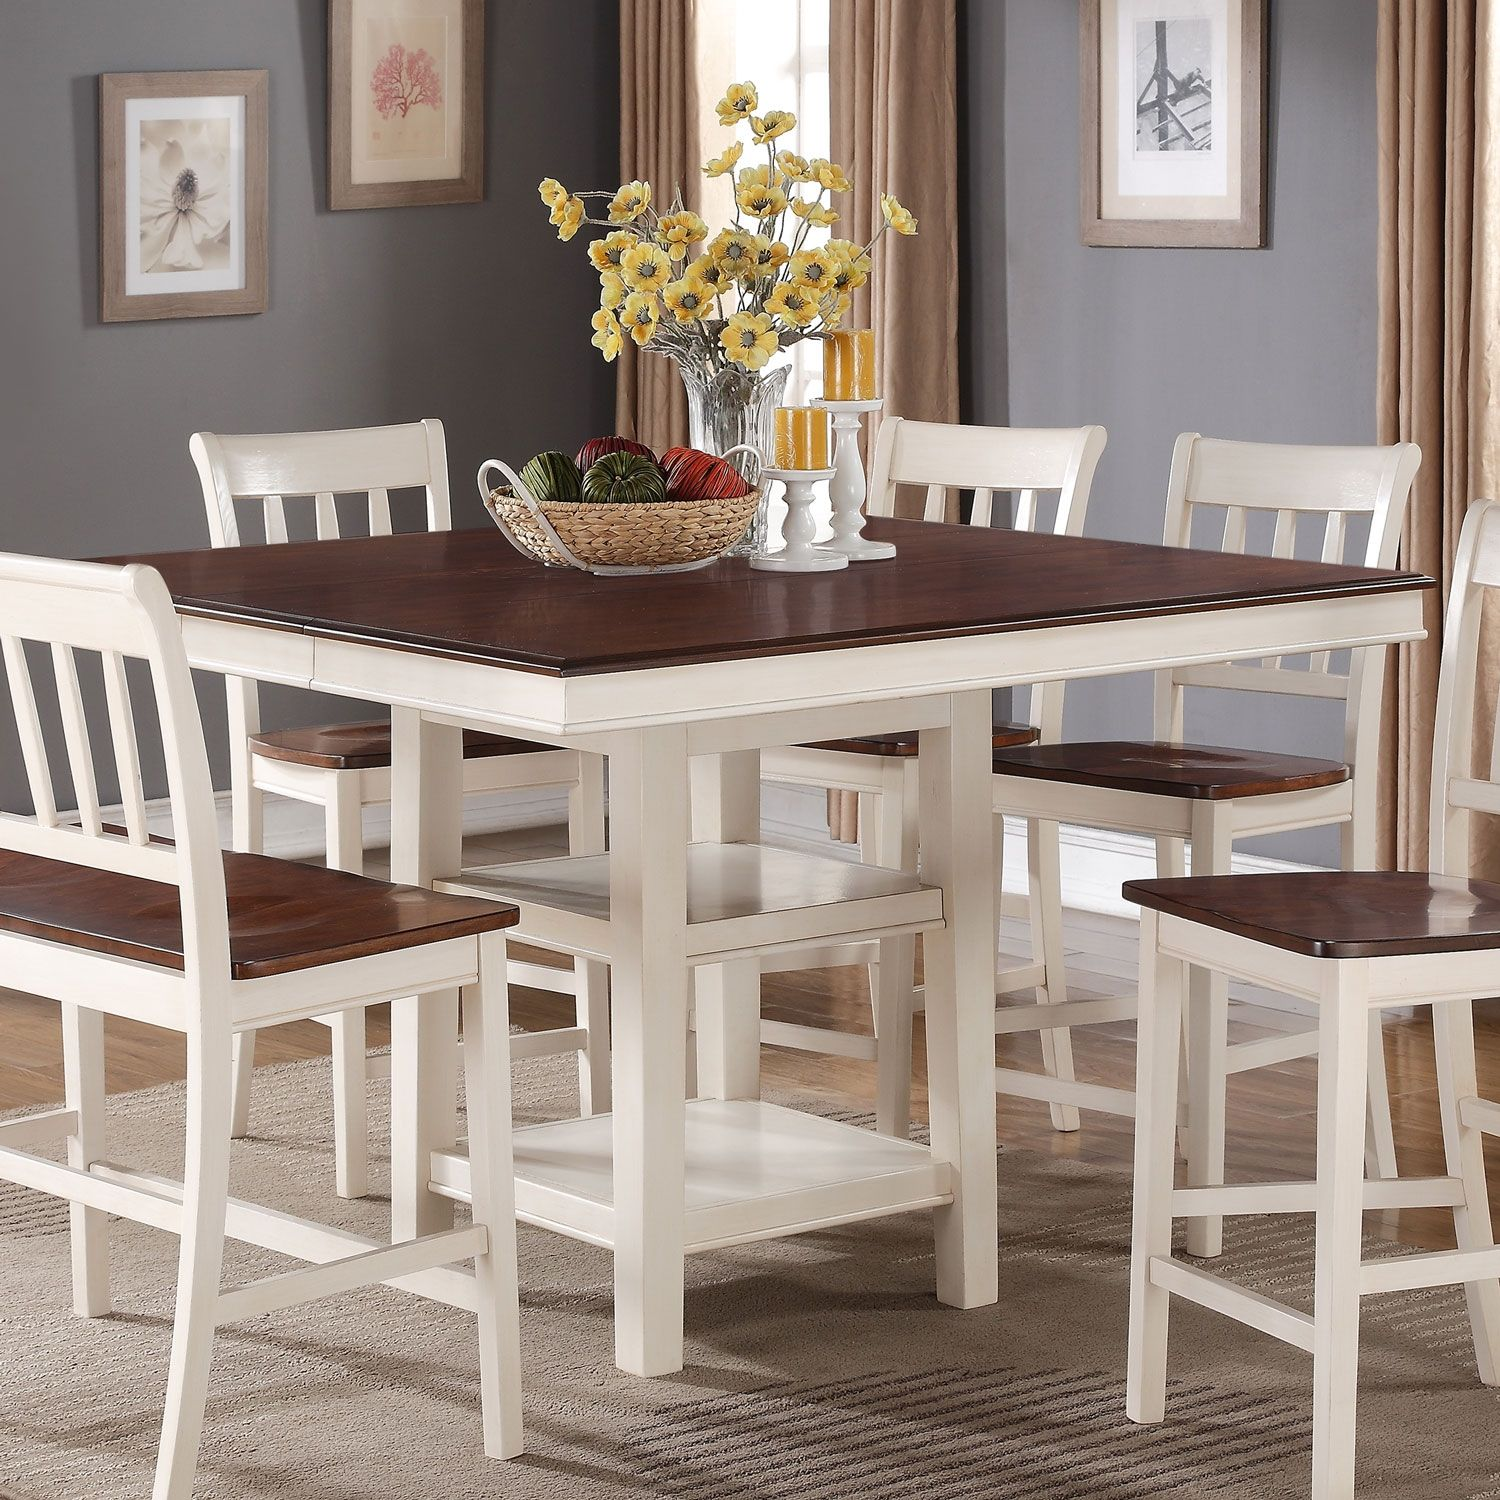 Dining Room Accent Pieces: Nyla Counter-Height Dining Table